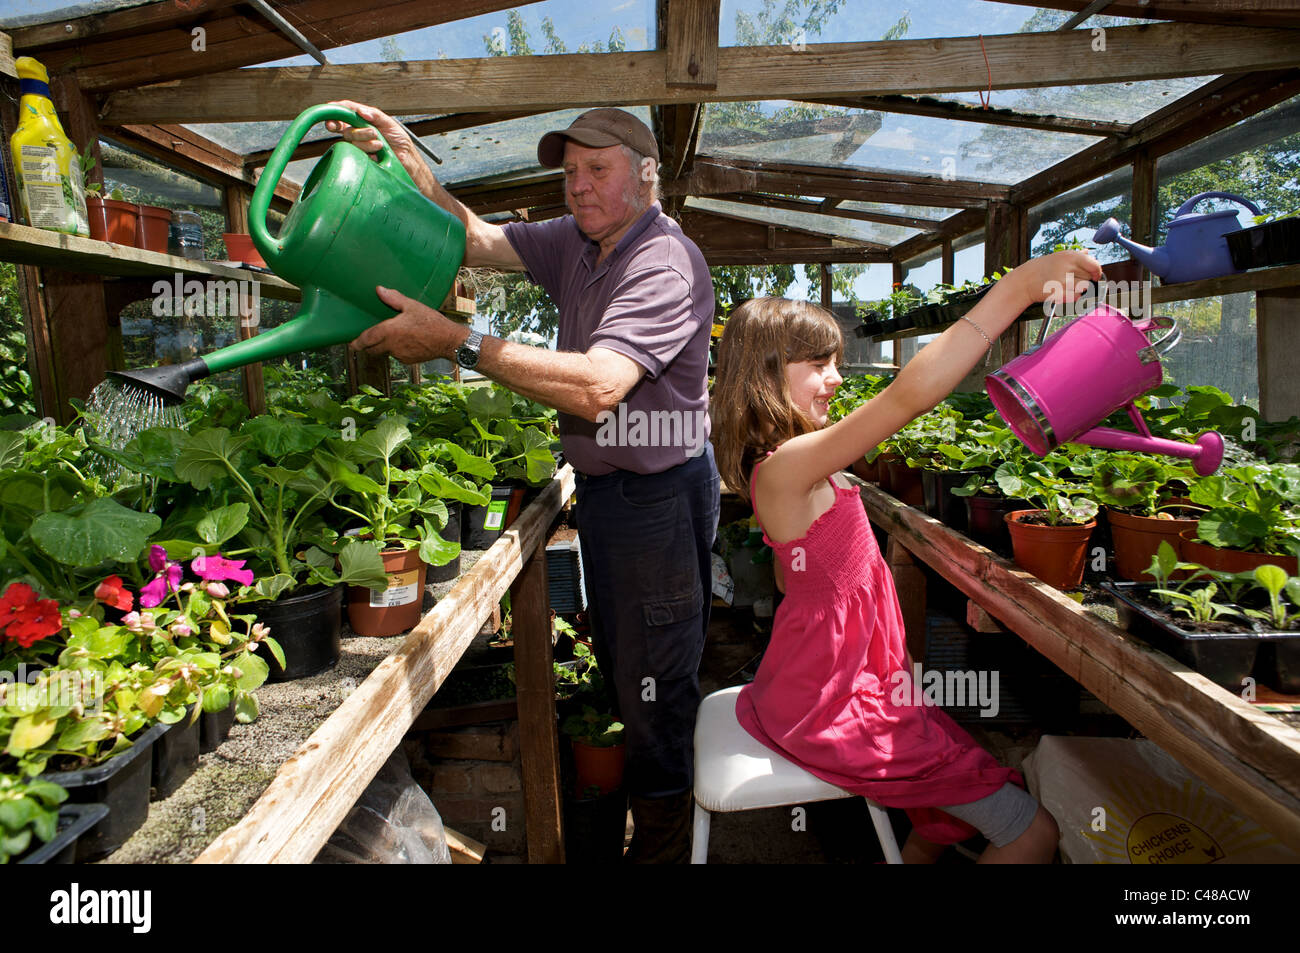 Grandfather and granddaughter watering flowers - Stock Image